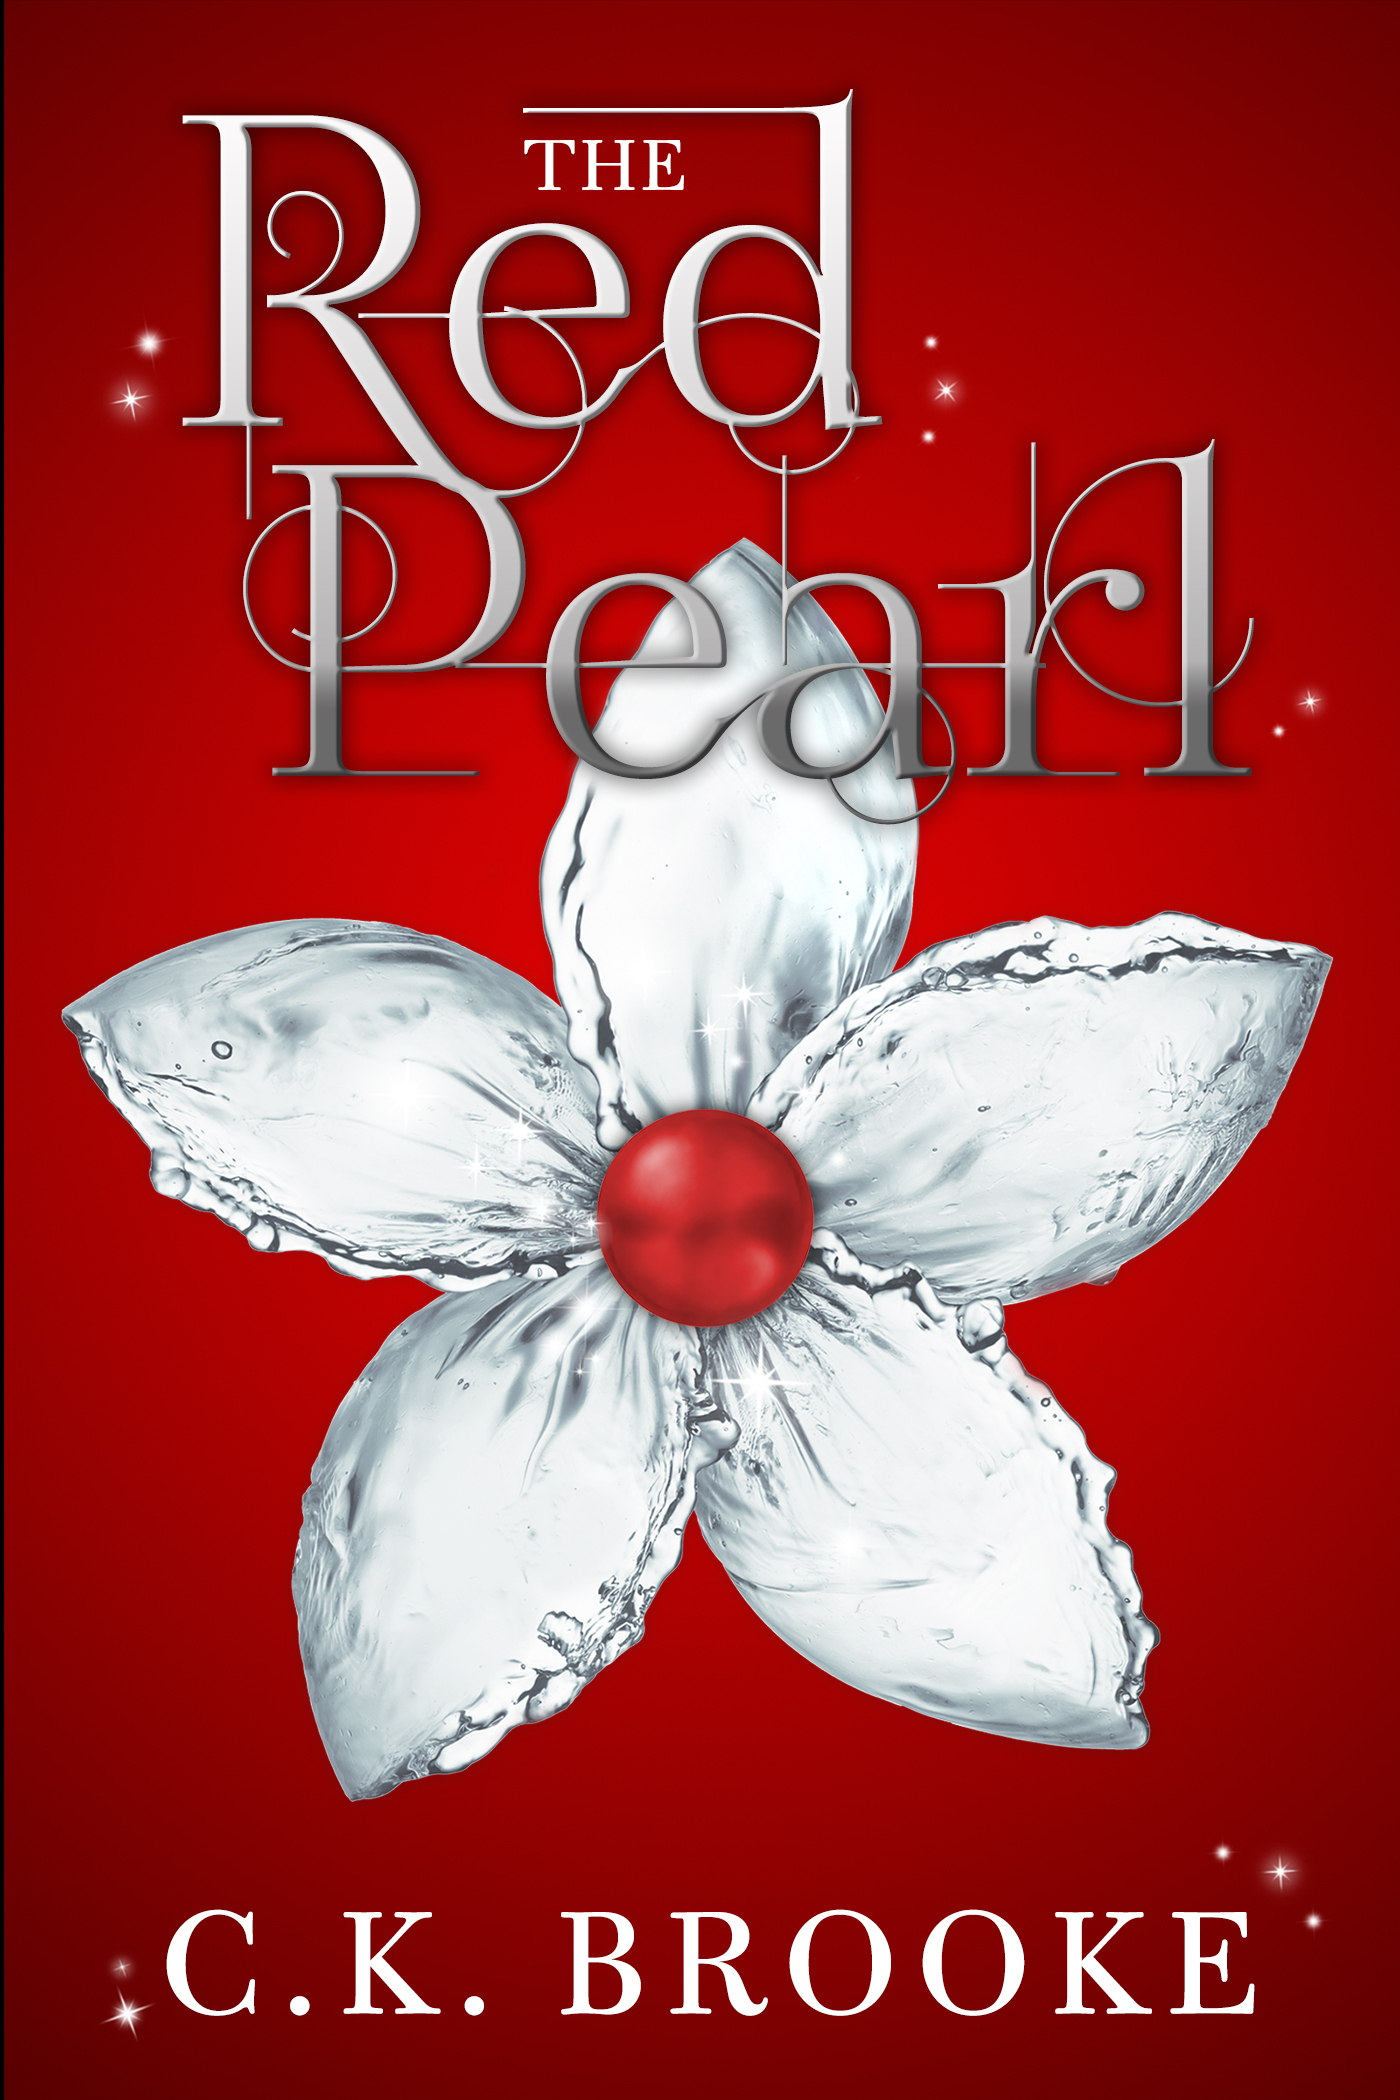 The Red Pearl C.K. Brooke